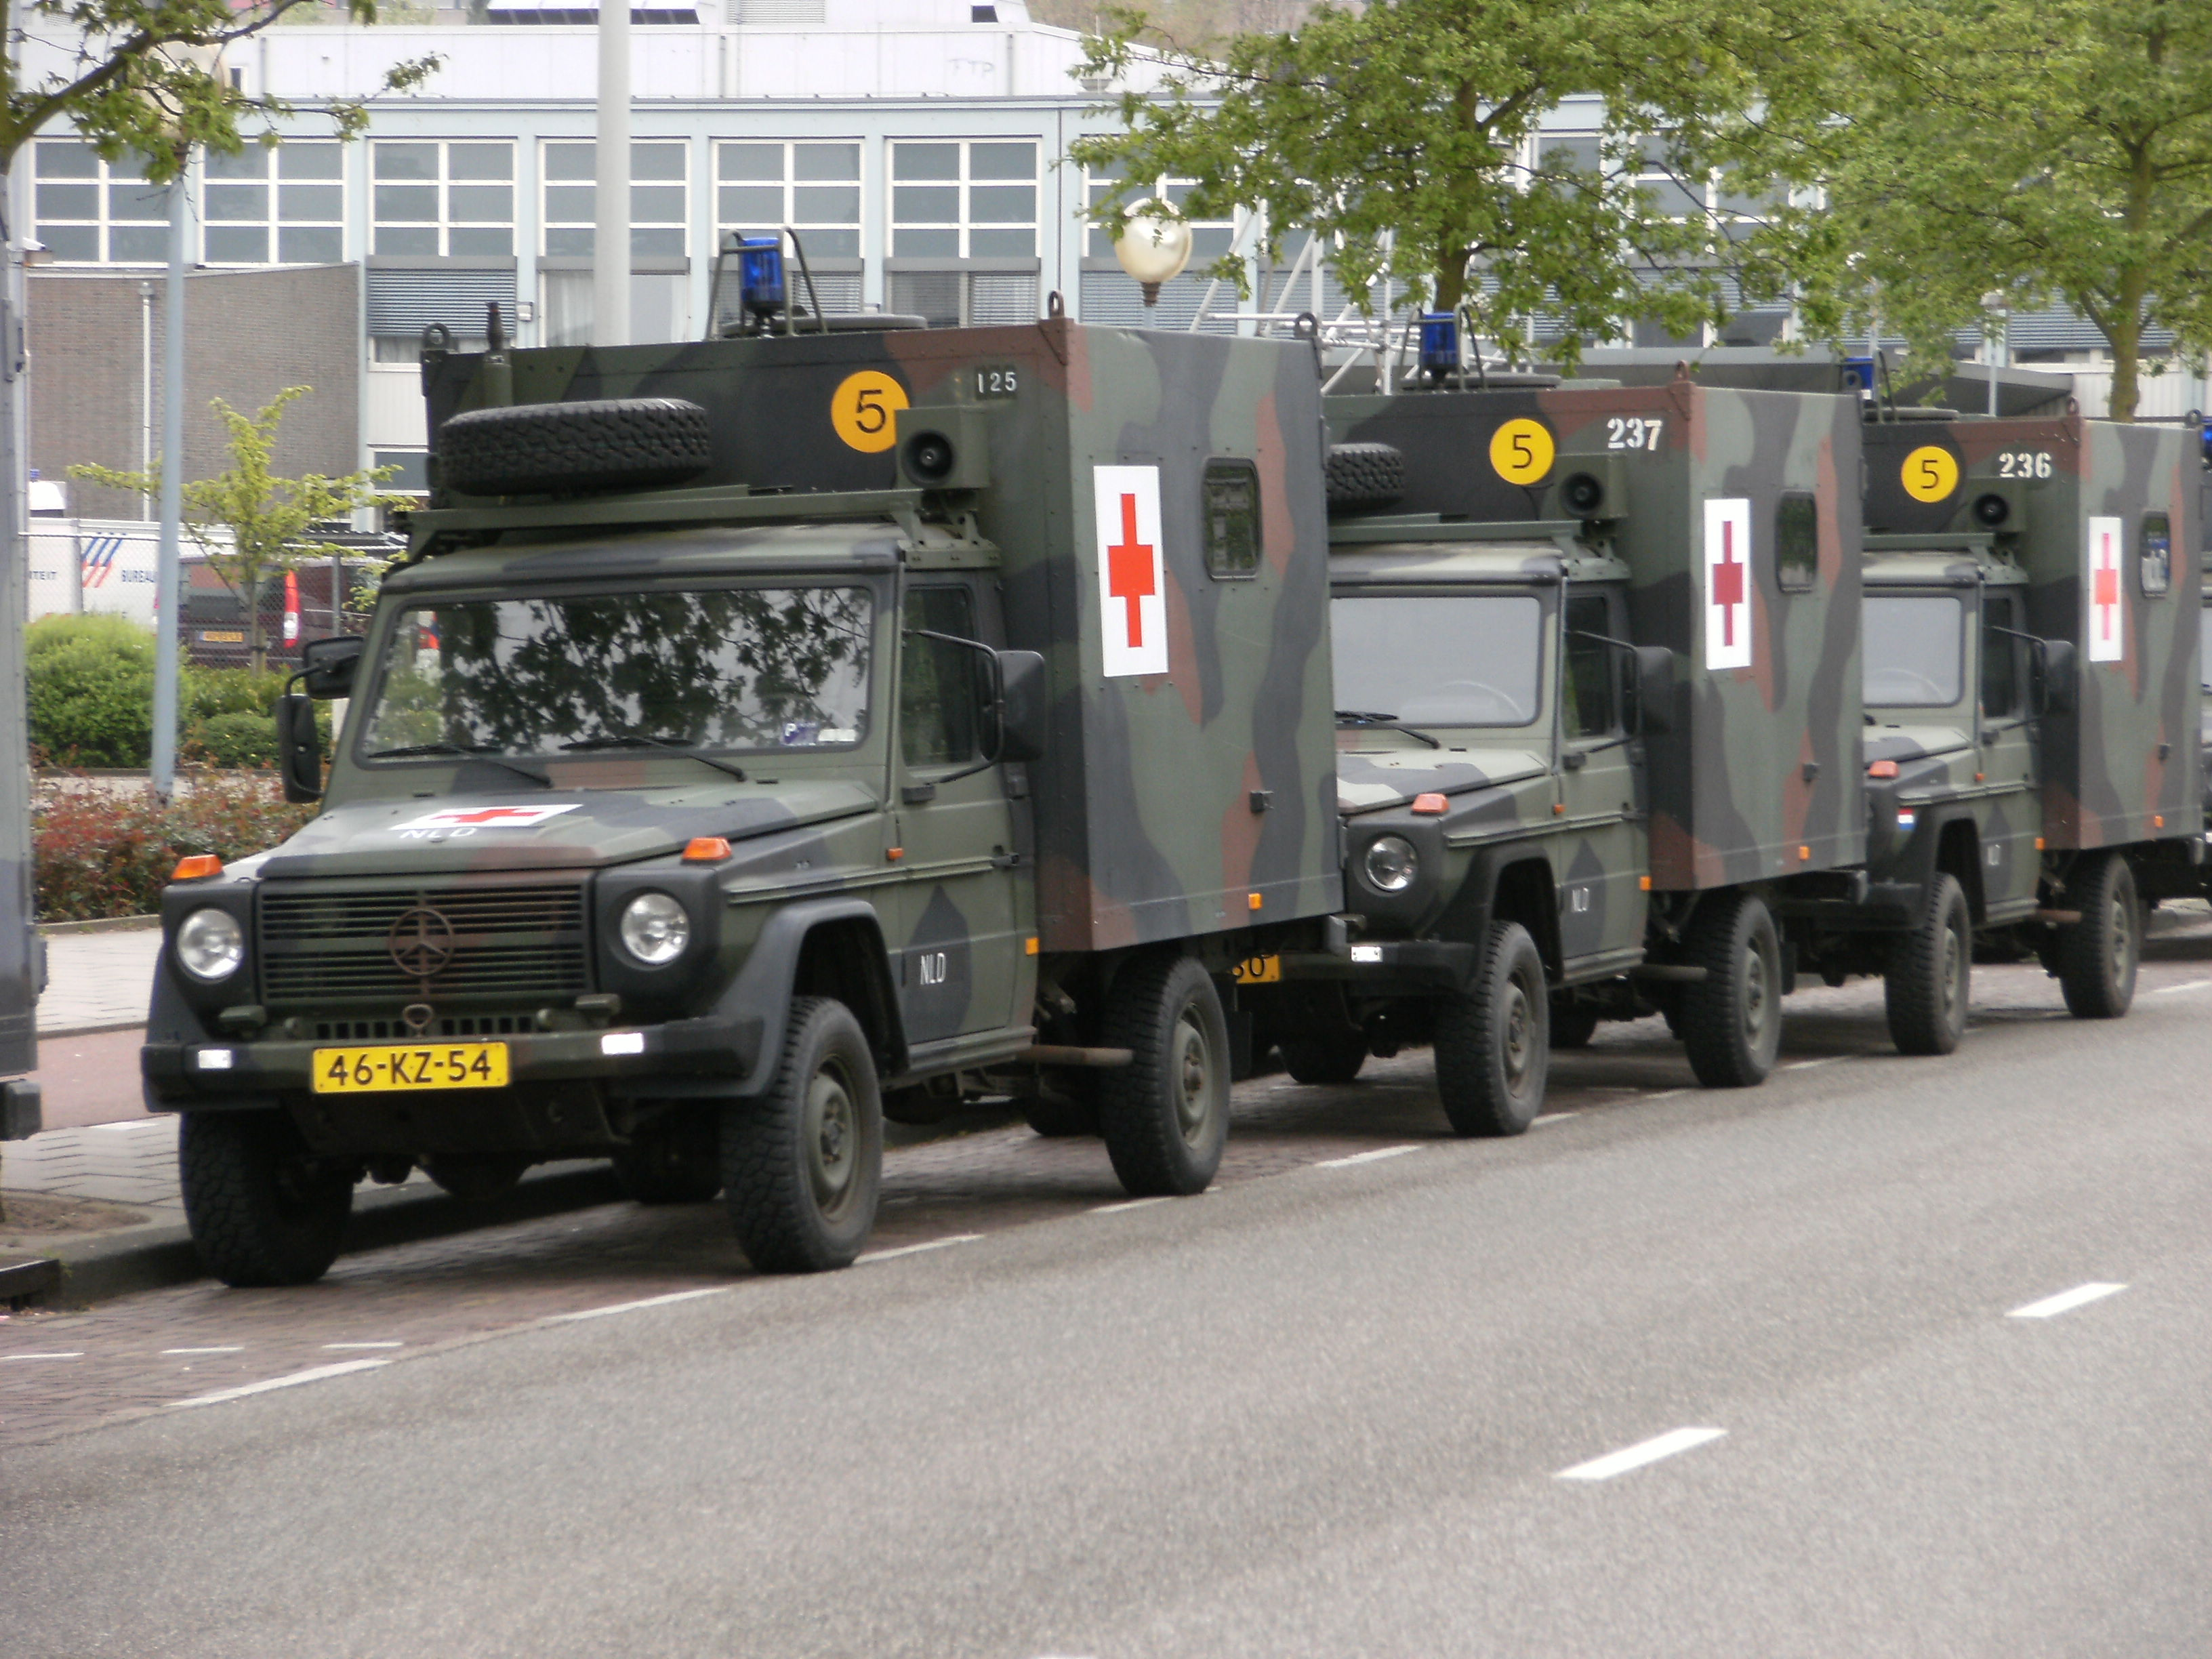 File:Red Cross Vehicles 2.JPG - Wikimedia Commons